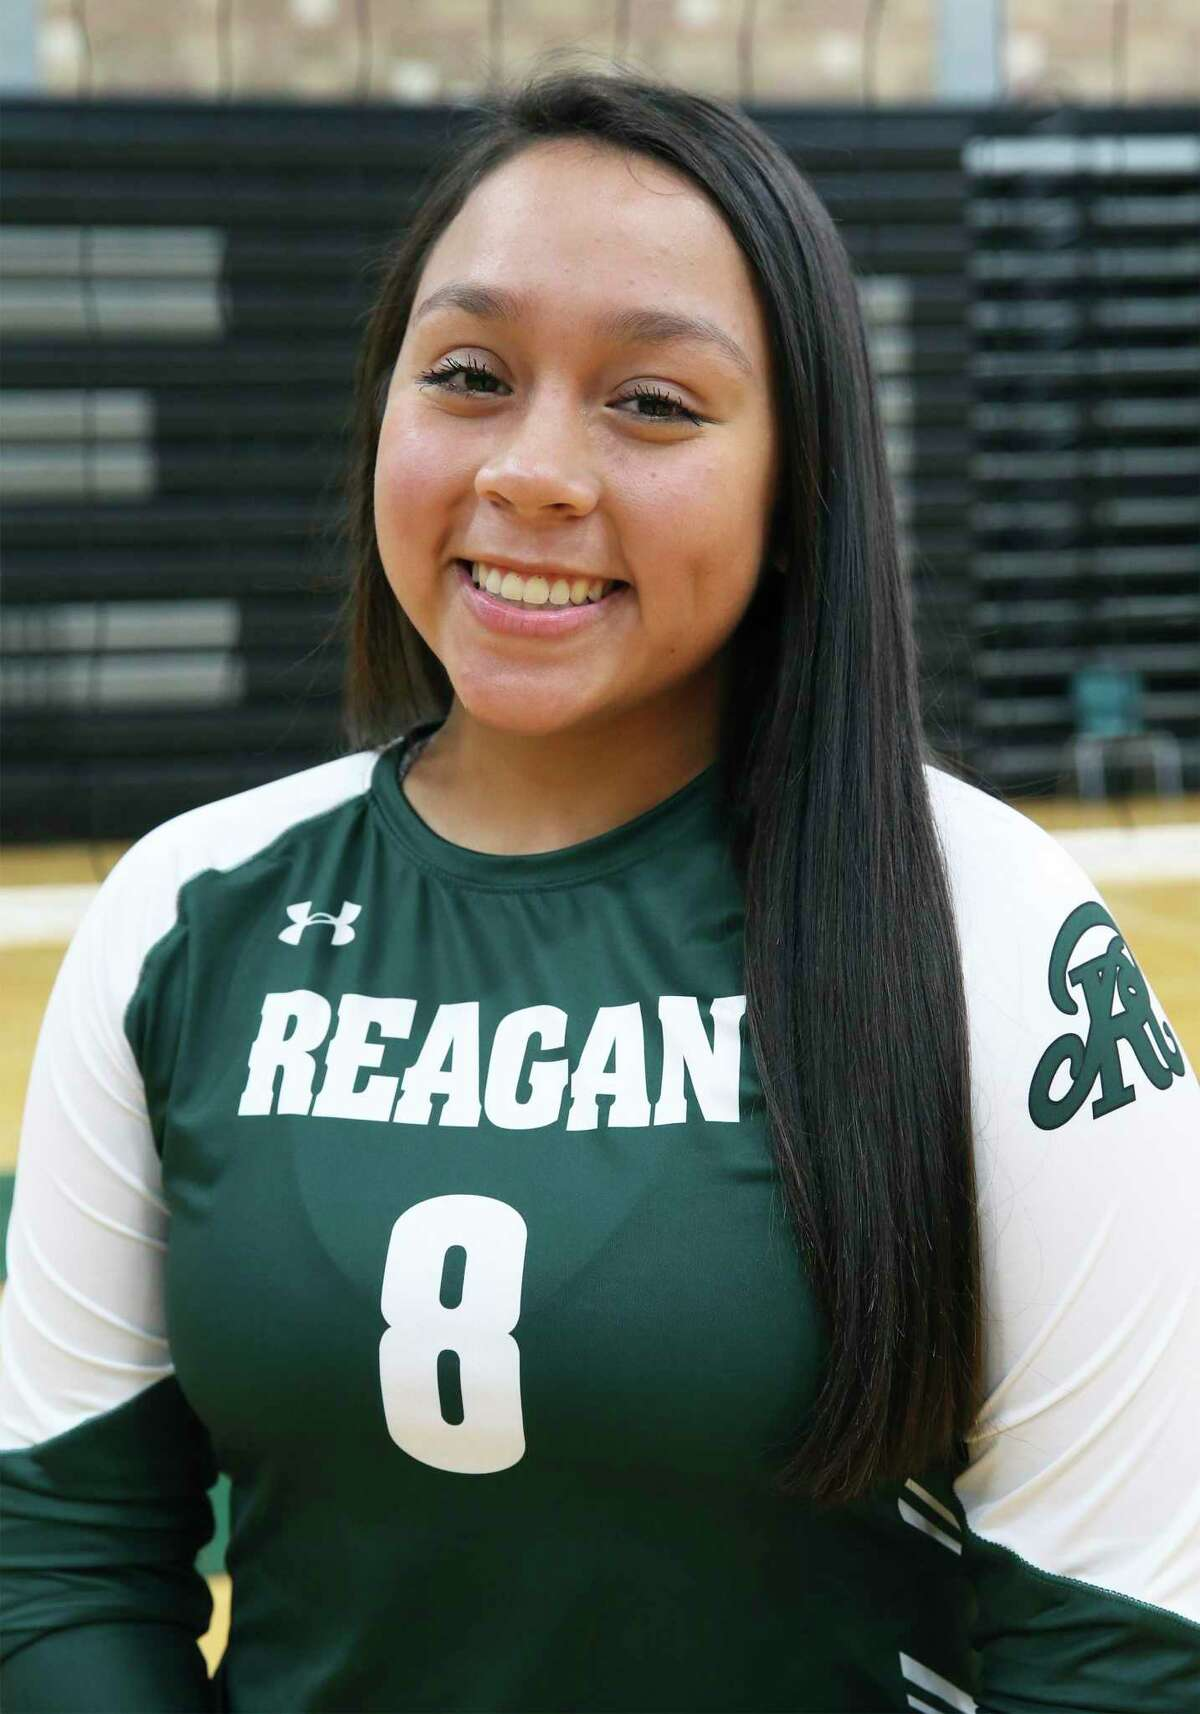 Reagan High School volleyball player Maddie Correa on Sept. 10, 2020.